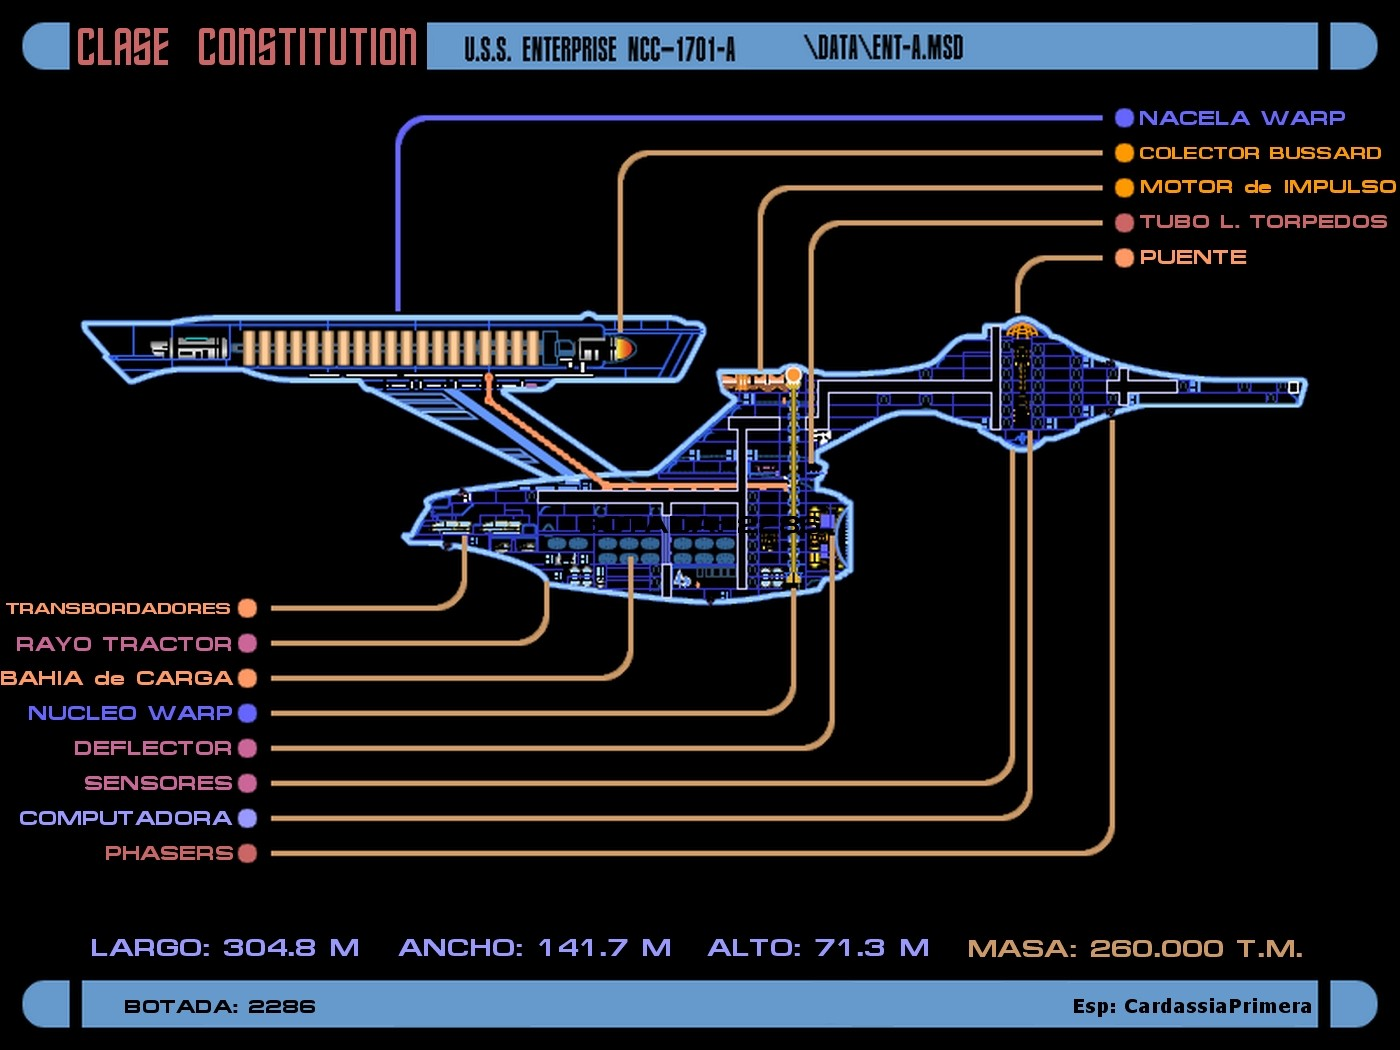 Uss Enterprise Schematic on enterprise-e schematics, robotech schematics, gilso star trek schematics, uss vengeance schematics, uss excelsior schematics, uss ncc-1701 d, star trek voyager schematics, enterprise-j schematics, uss voyager specifications, uss voyager lcars, ncc 1701 e schematics, ds9 schematics, new enterprise ncc-1701 schematics, uss voyager schematics, star trek enterprise schematics, uss defiant schematics, uss reliant schematics, star trek lcars schematics, enterprise nx-01 schematics, enterprise-d schematics,